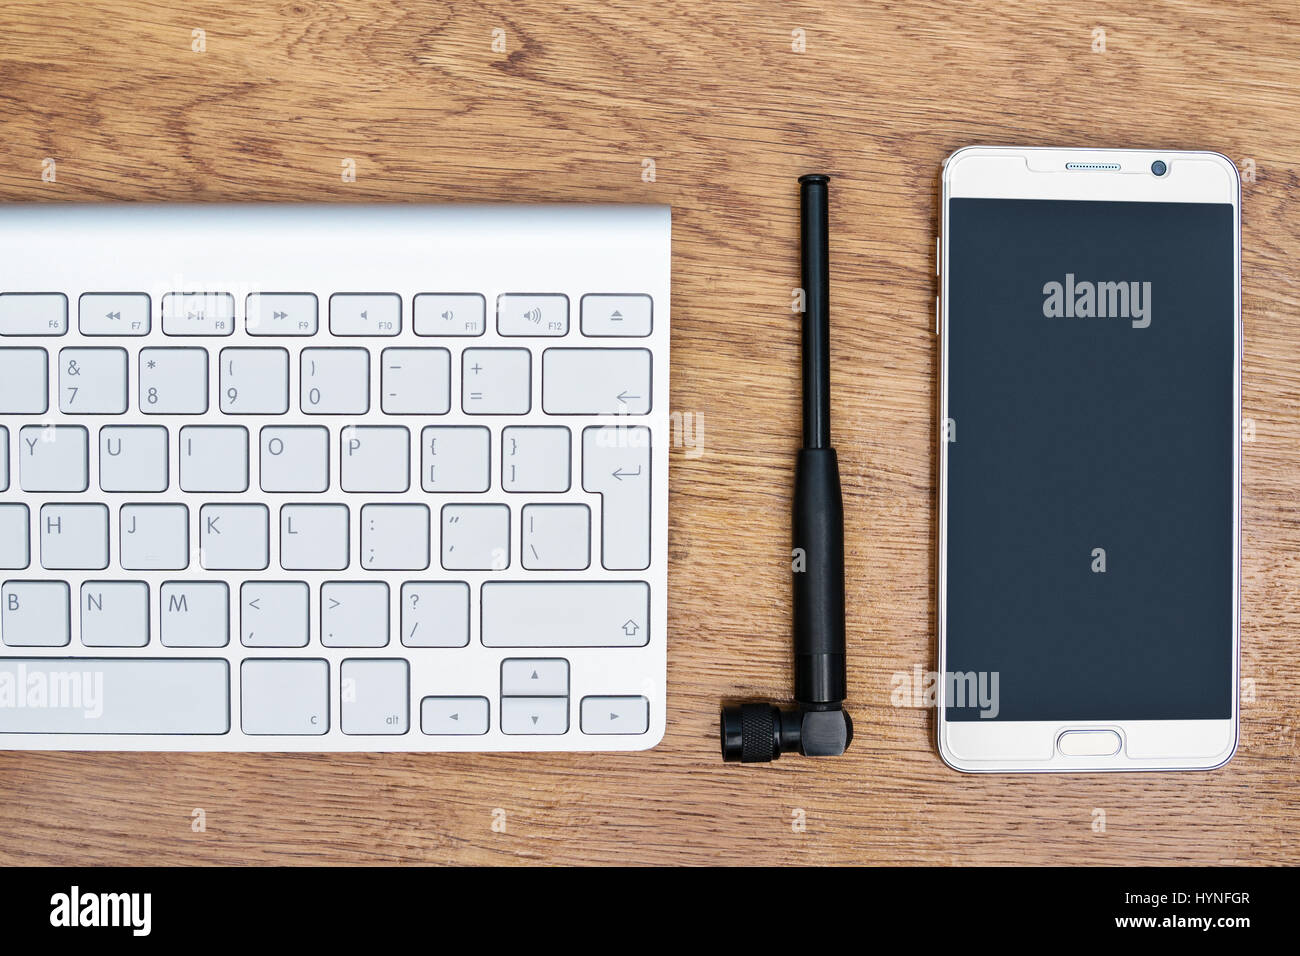 Telephone, antenna and keyboard on the table - Stock Image